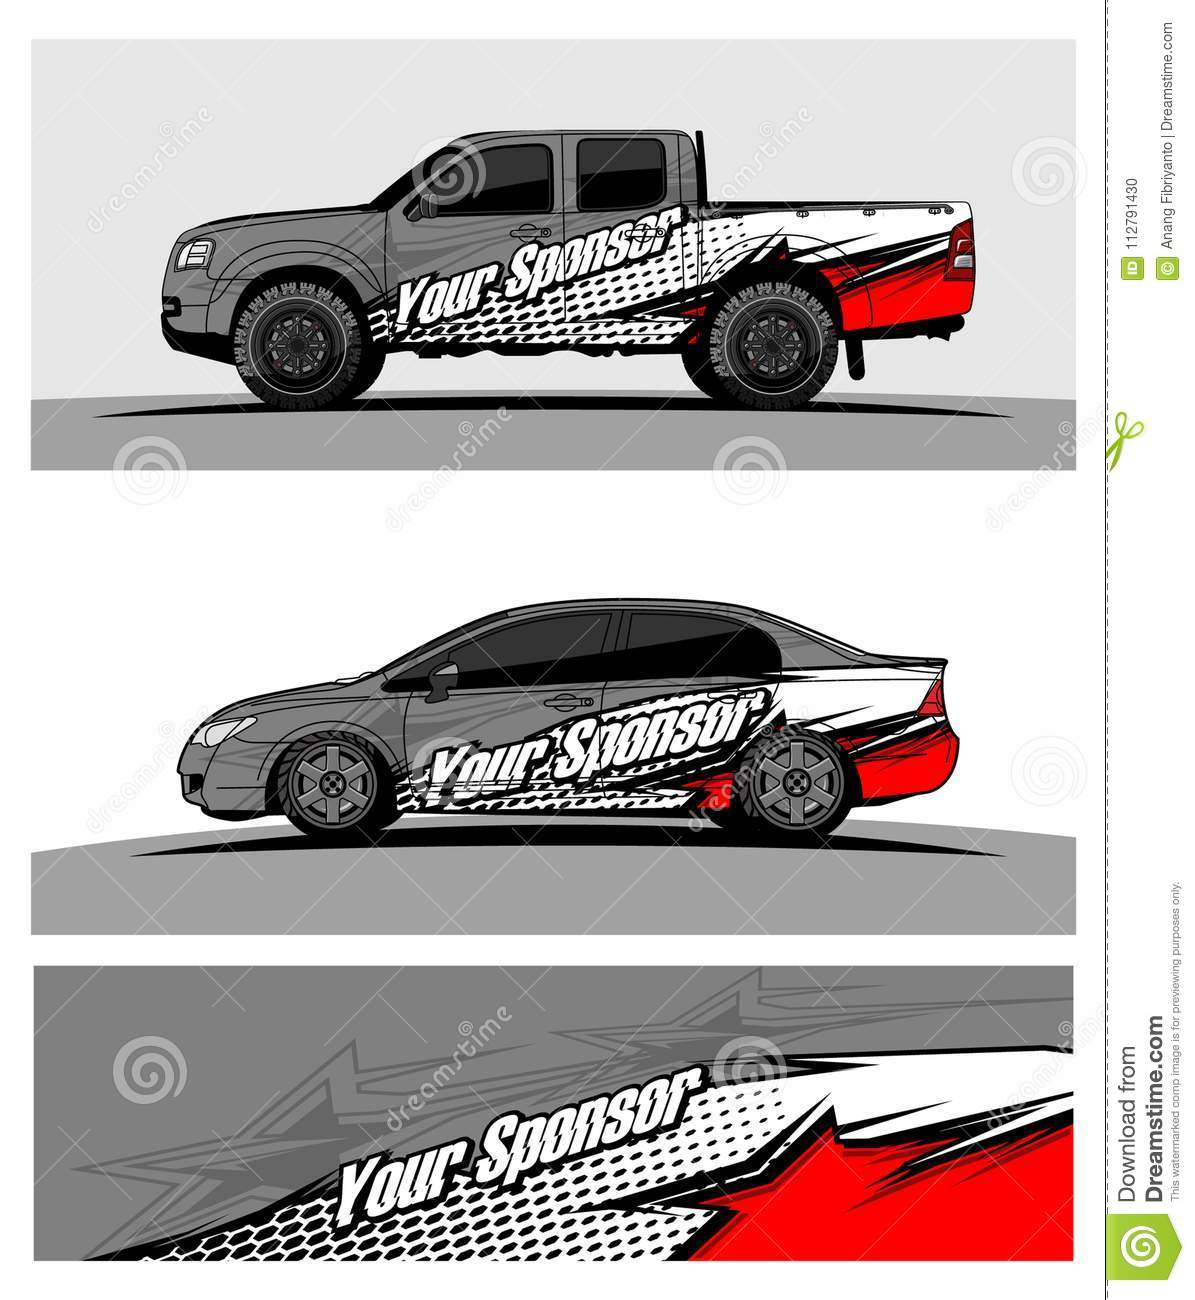 Abstract racing background for truck car and vehicles use for car wrap and vinyl cutting sticker